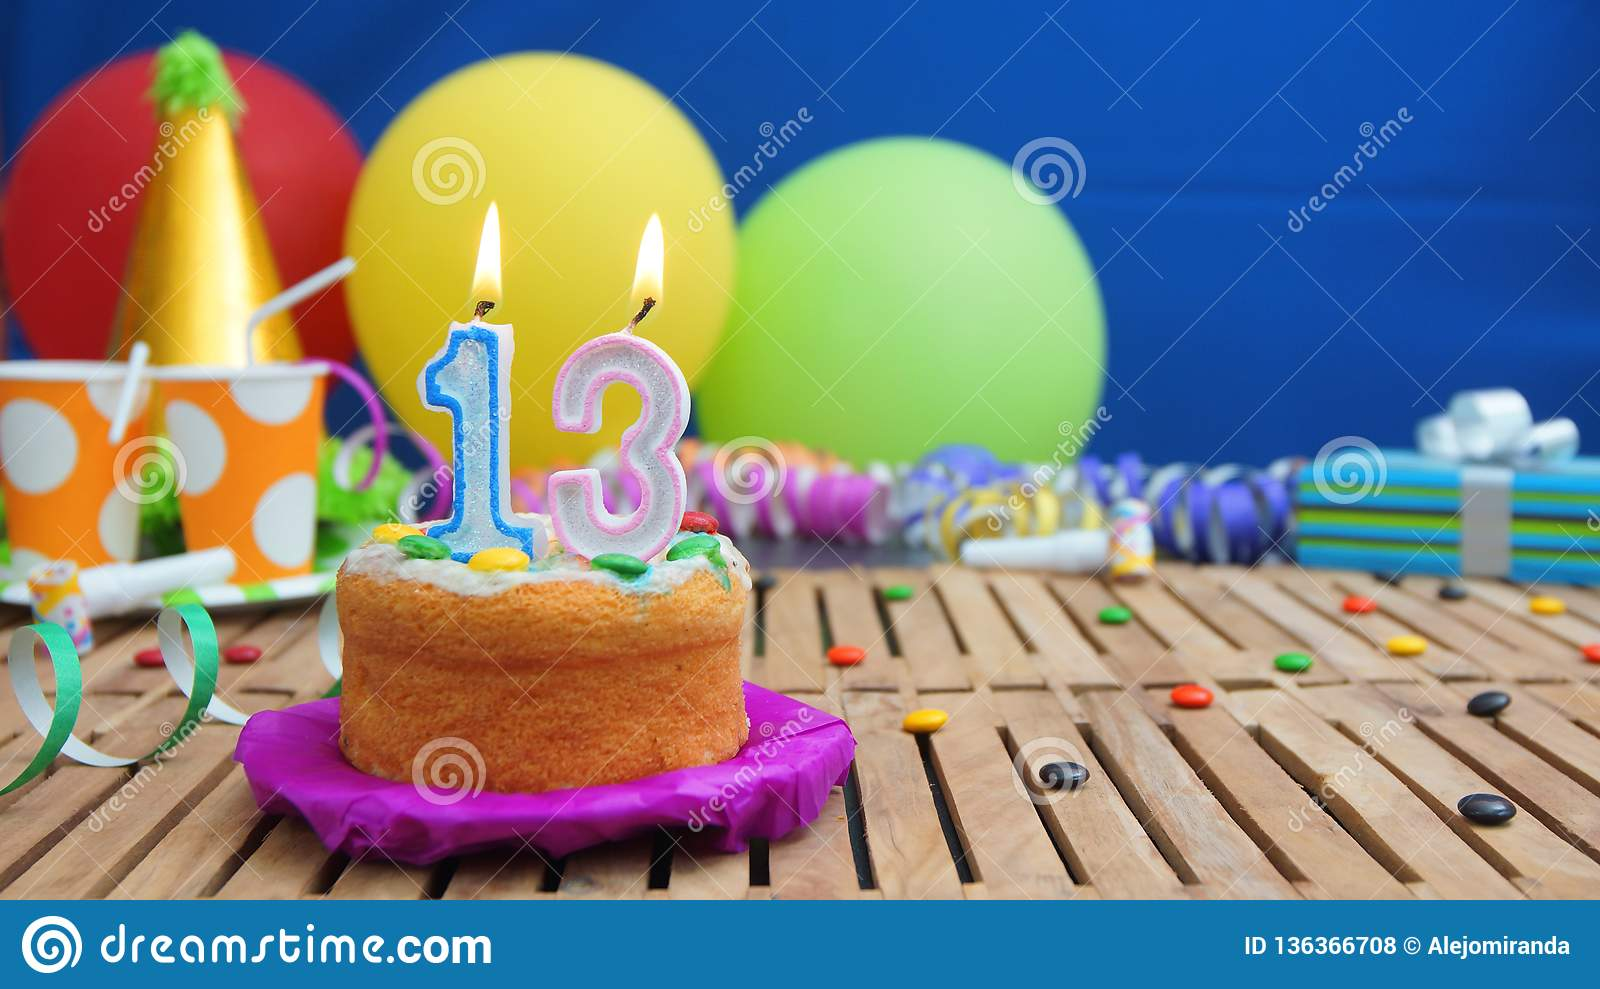 Birthday 13 cake with candles on rustic wooden table with background of colorful balloons, gifts, plastic cups and candies